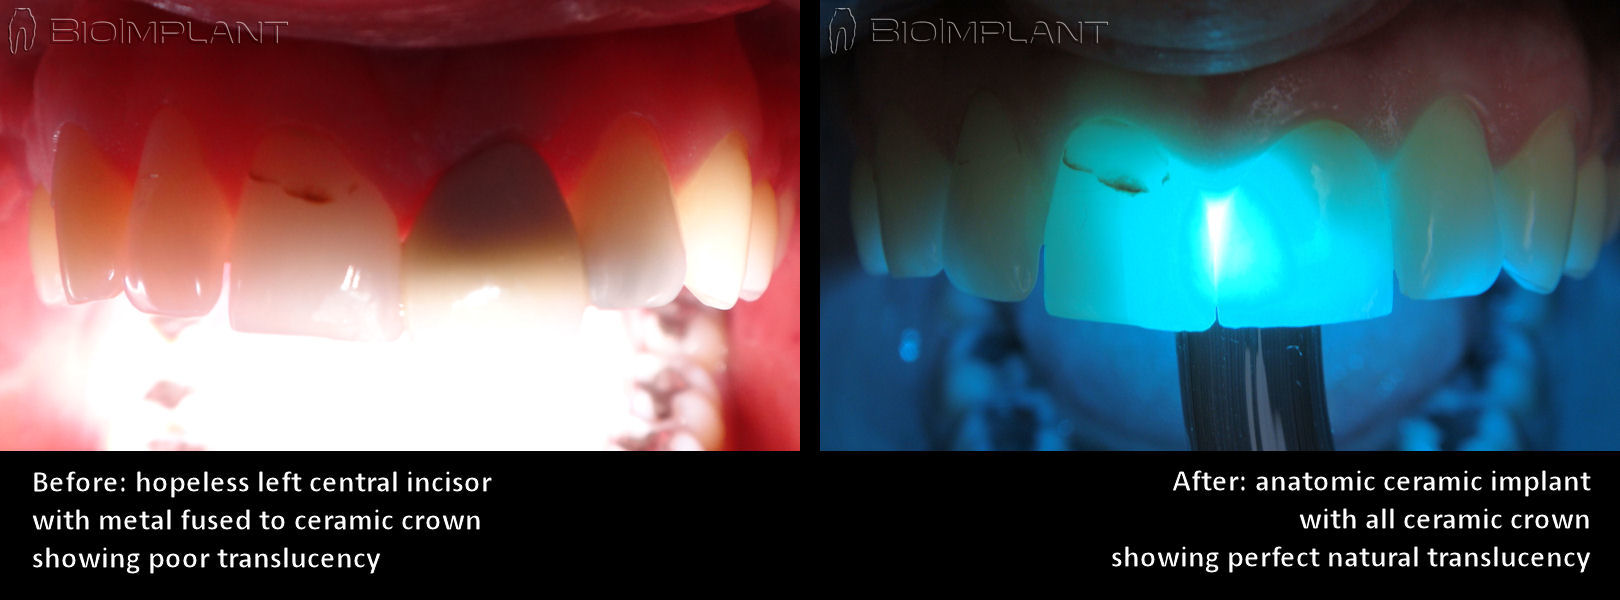 translucency_of_truly_anatomic_dental_implant